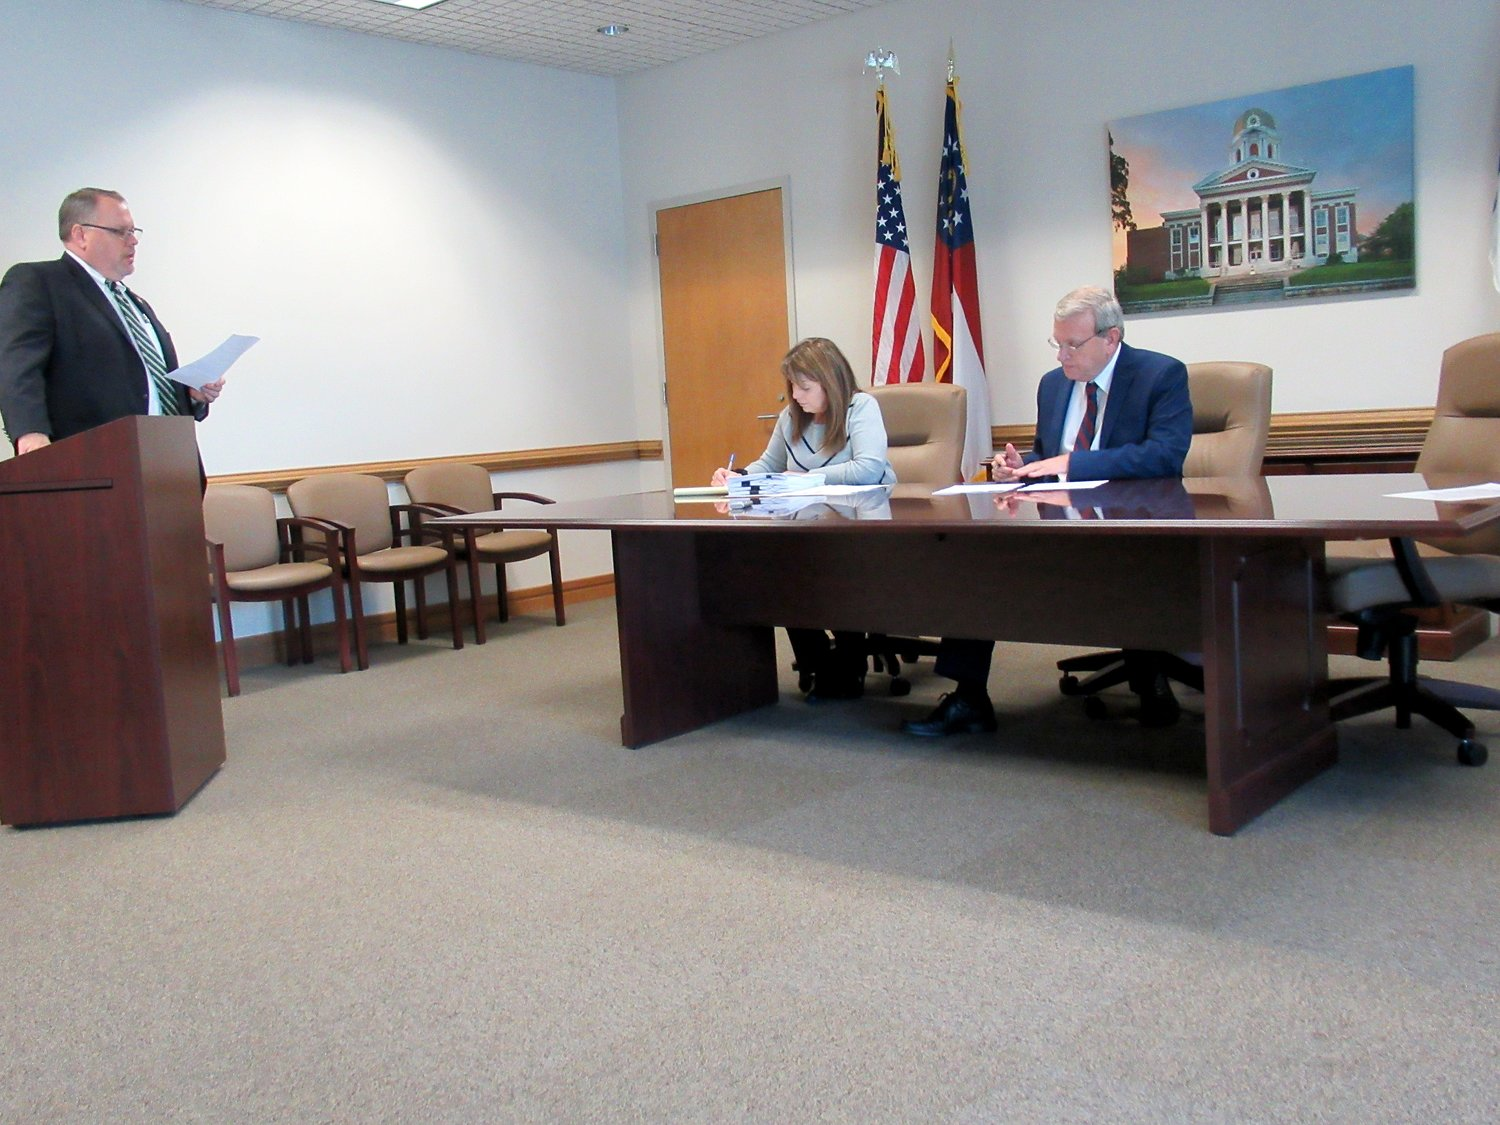 From left, Bartow County Administrator Peter Olson, County Clerk Kathy Gill and County Commissioner Steve Taylor at Wednesday's public meeting.